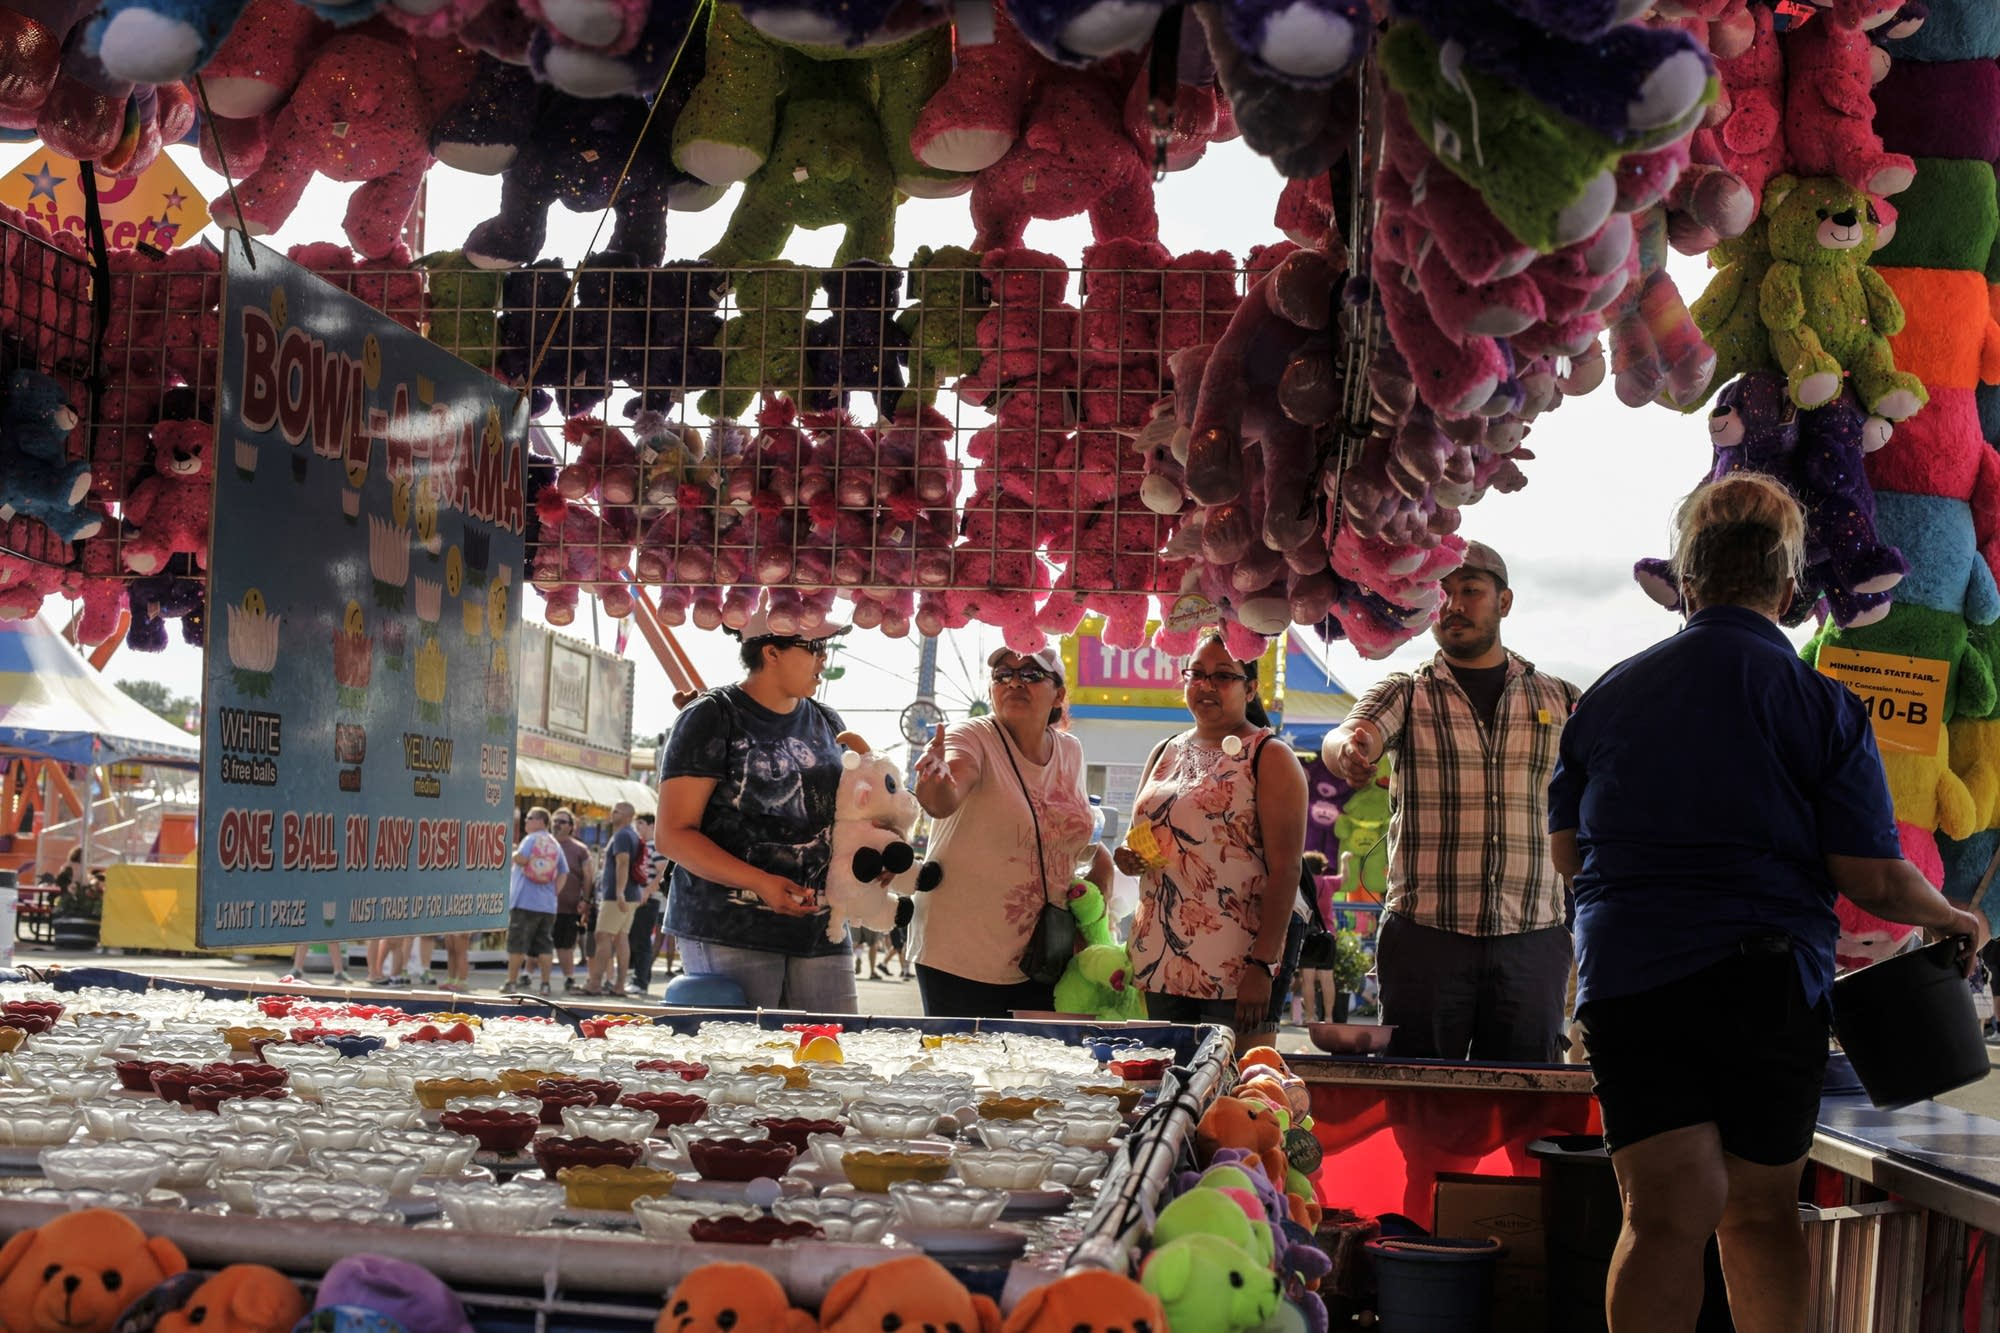 Carnival games become a competitive activity.